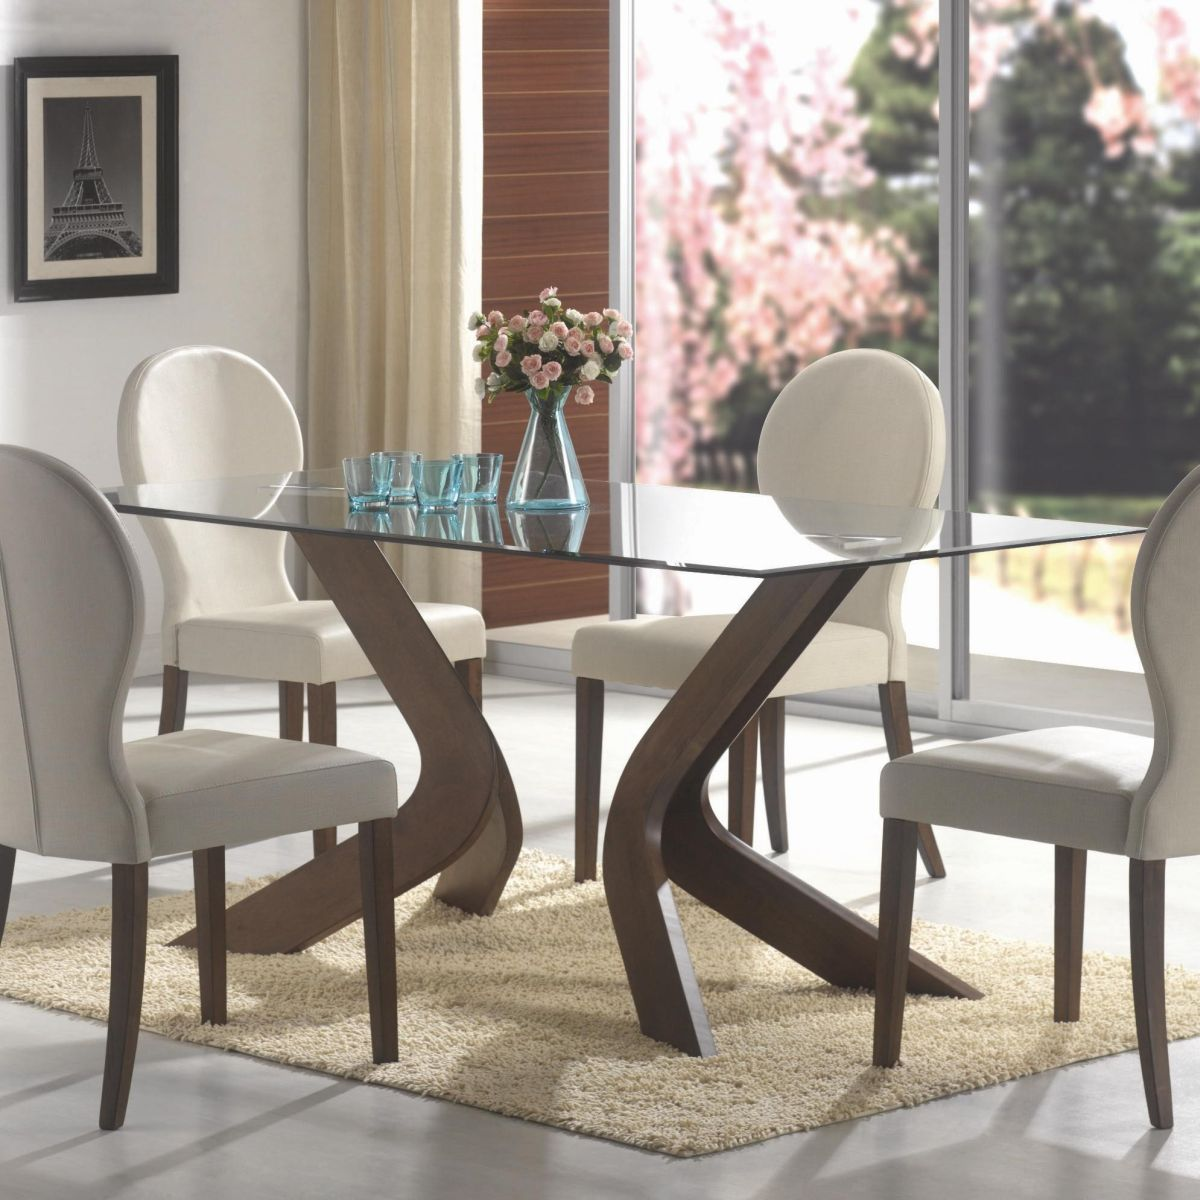 glass top dining table small square kitchen table Oval back dining chairs and glass top table